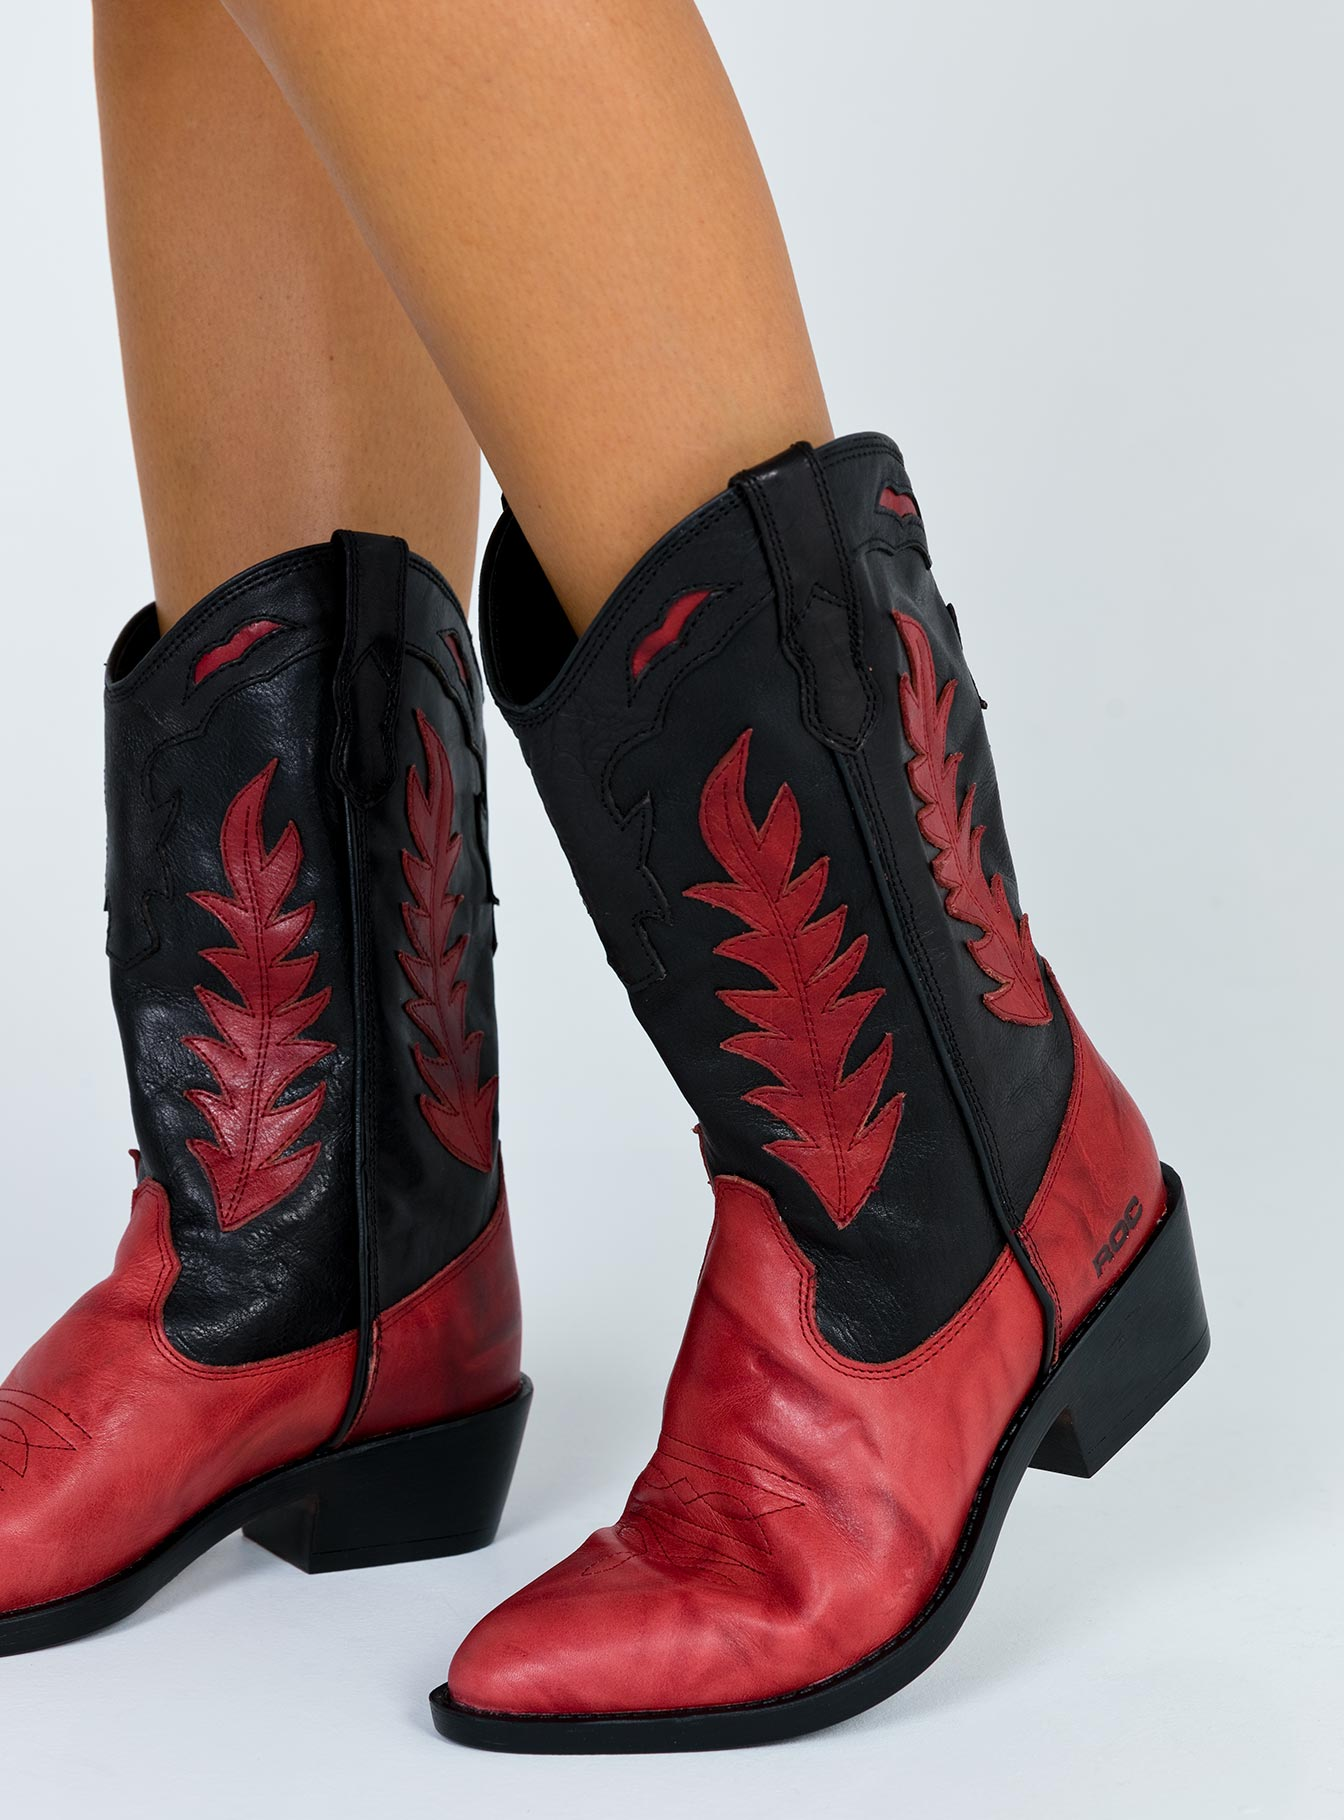 Roc Boots Australia India Boots Red/Black